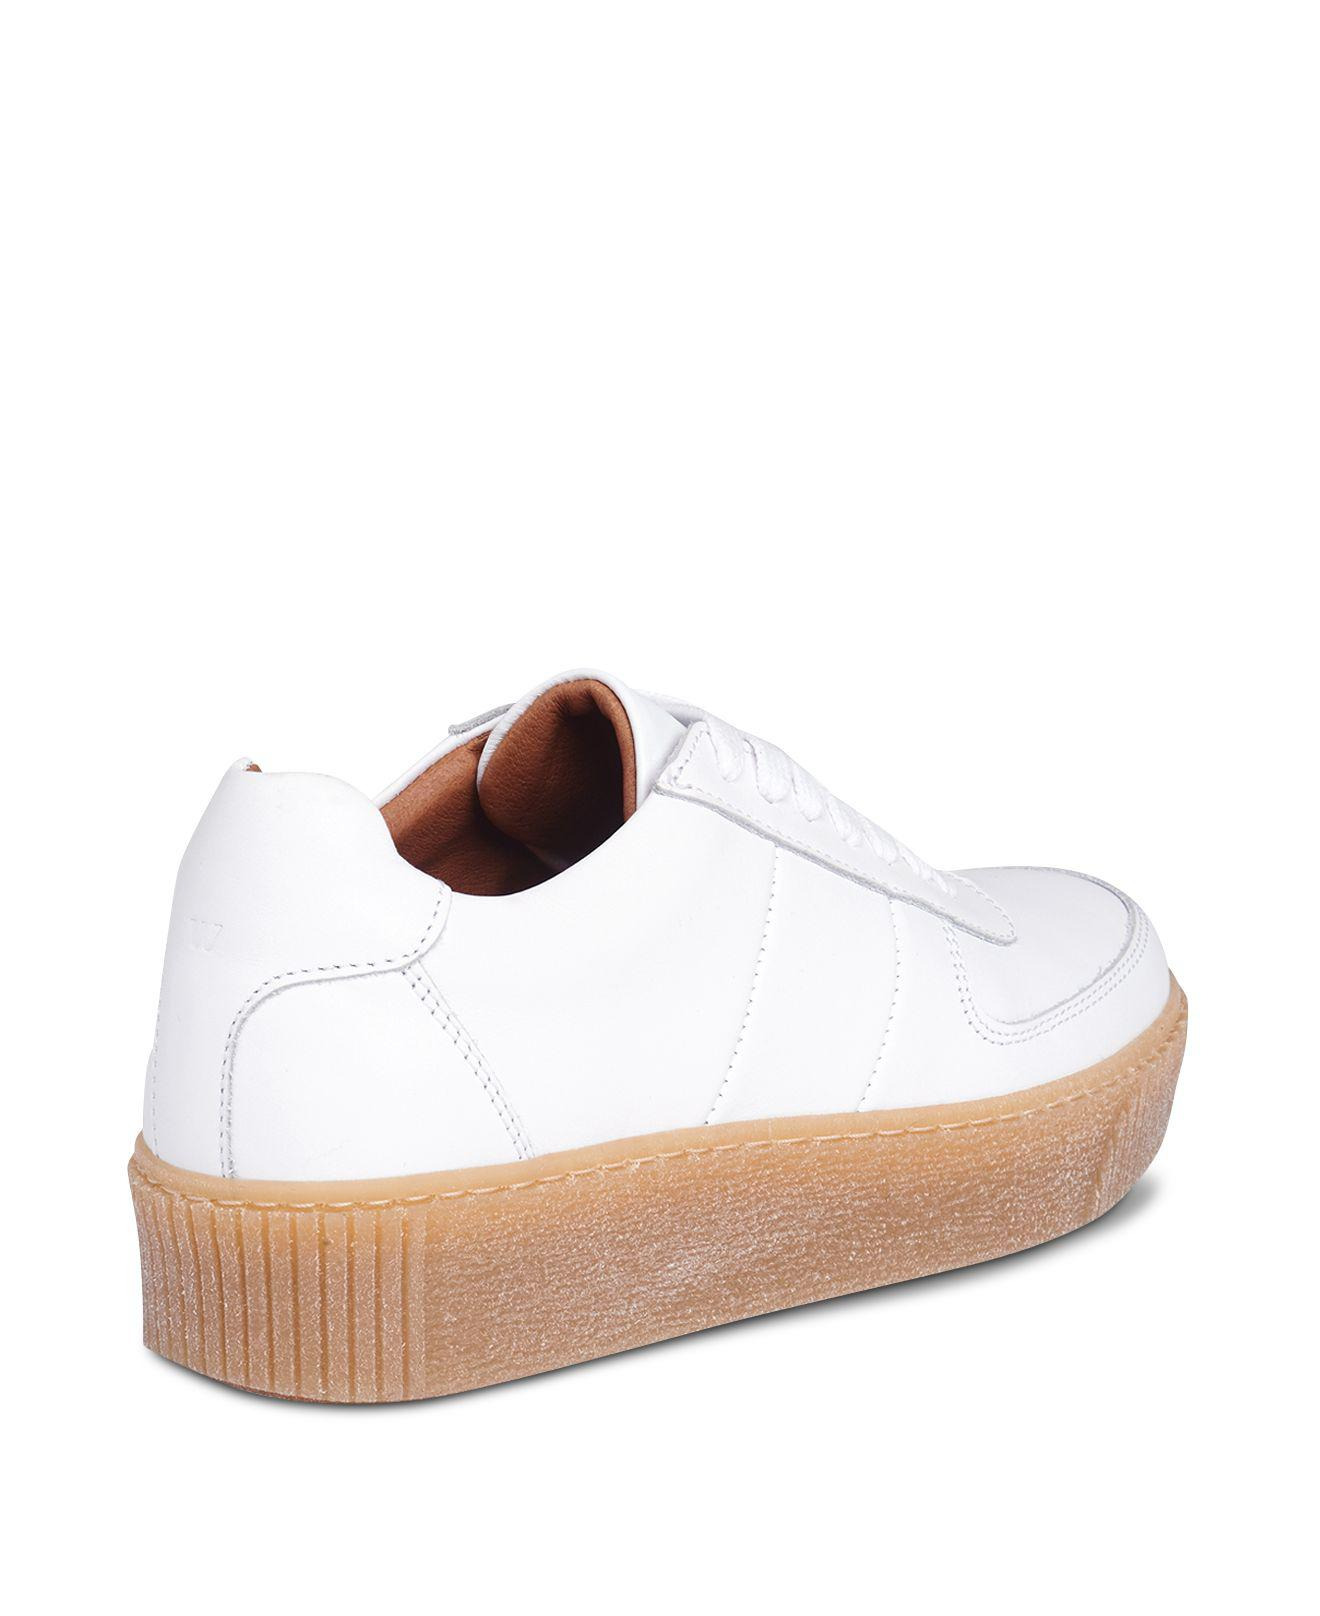 Whistles Women's Abbey Leather Lace Up Platform Sneakers wyeVDwh